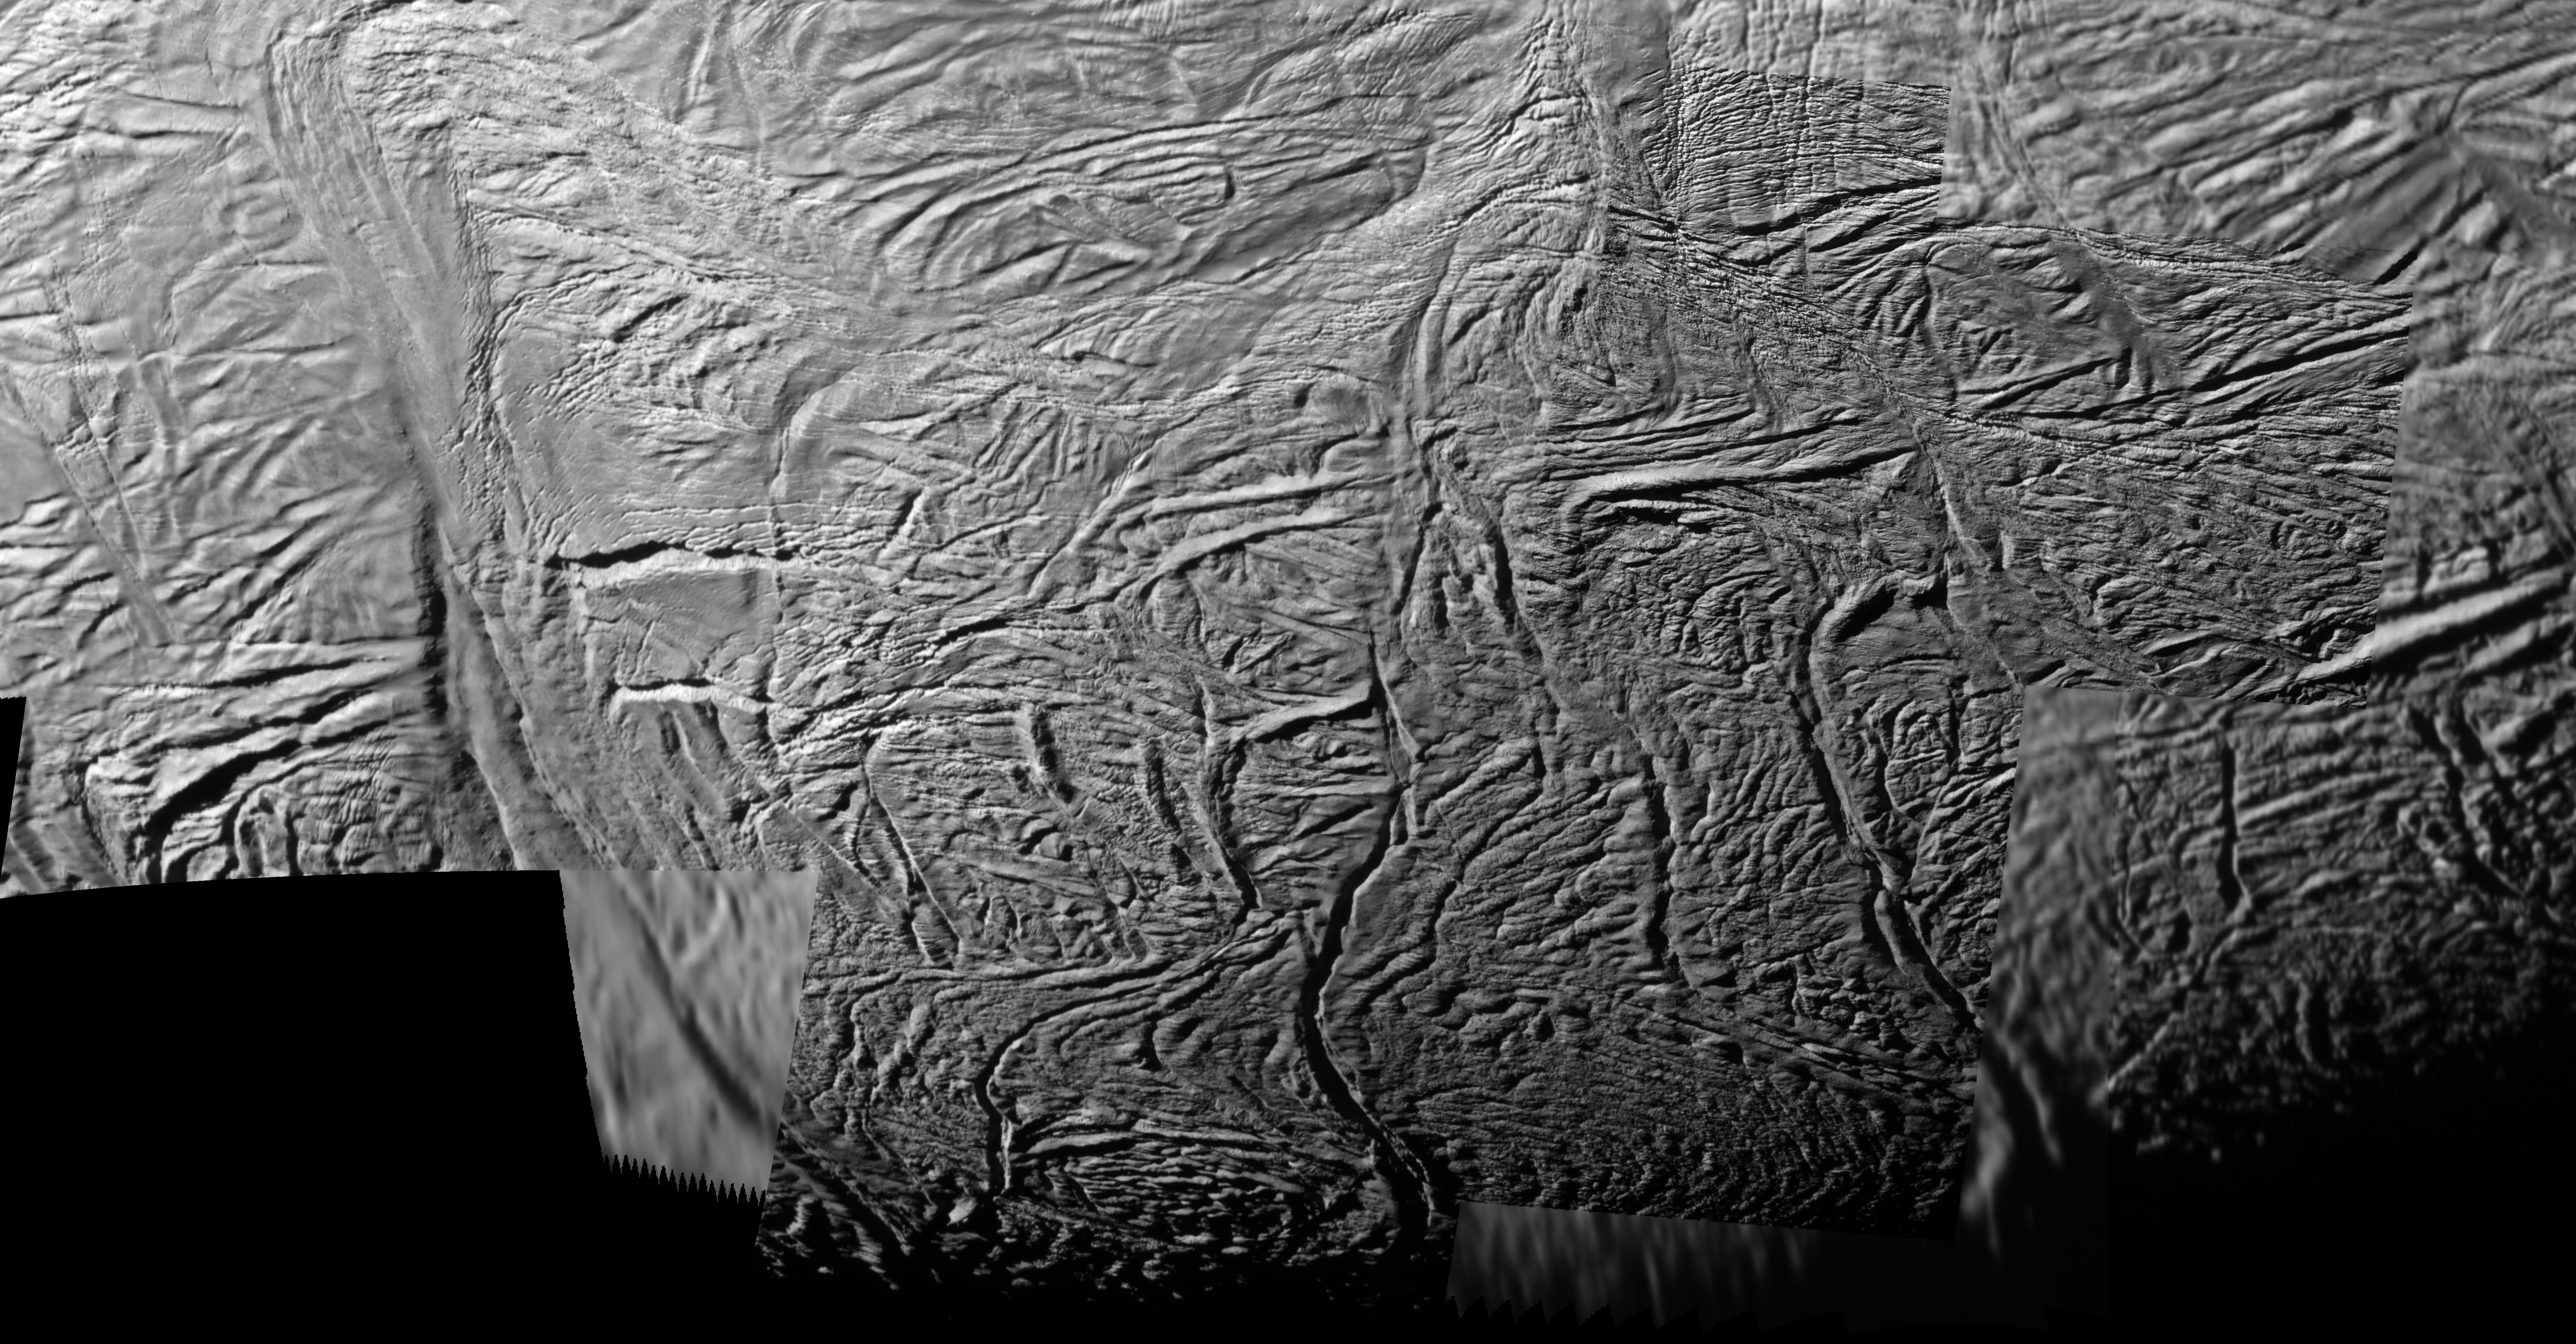 This mosaic shows extraordinary details of tectonic deformation in the fractured south polar region of Saturn's moon Enceladus, where jets of water ice spray outward to form Saturn's E ring.